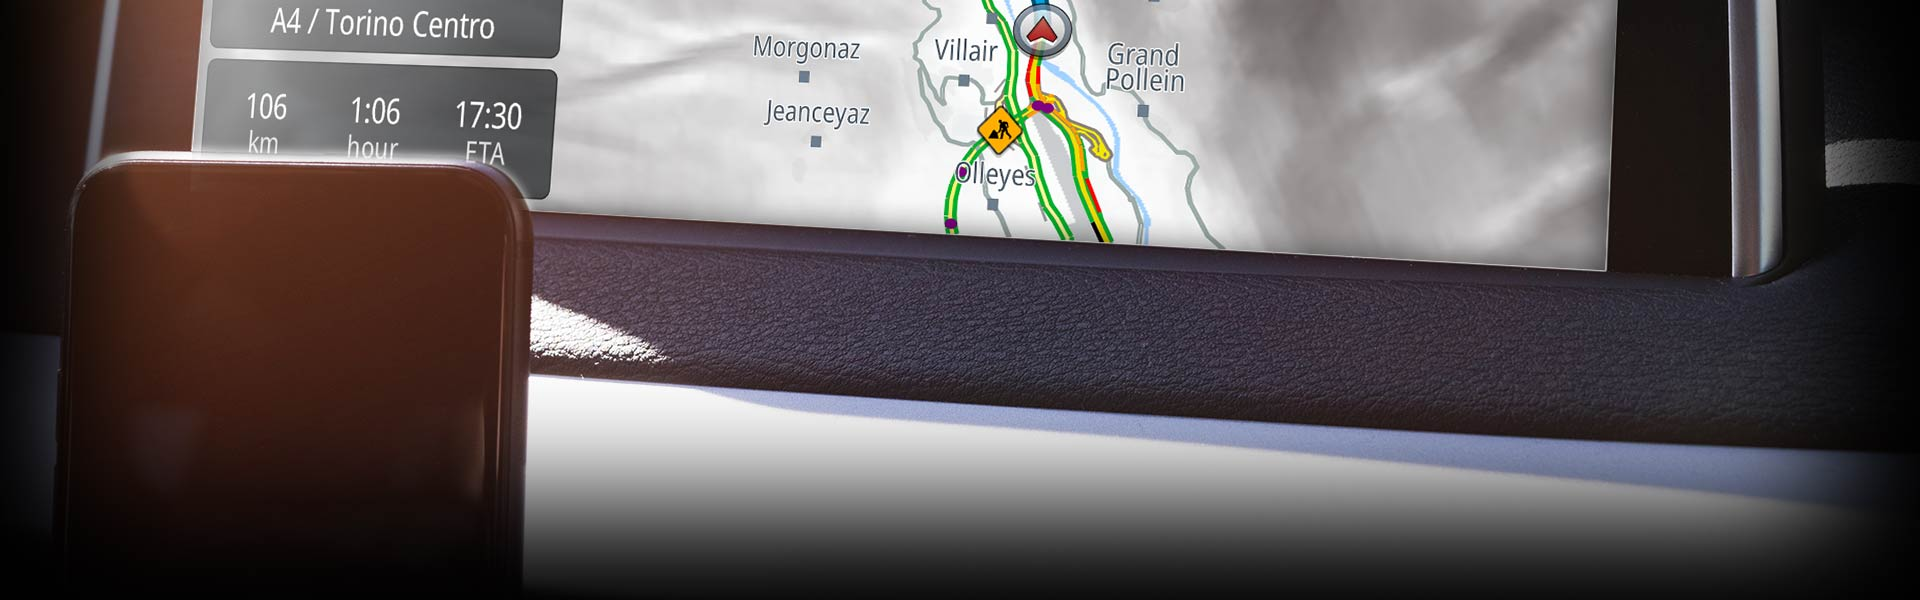 Genius Maps GPS navigation app lets you connect to the in-car infotainment systems of certain brands of cars.